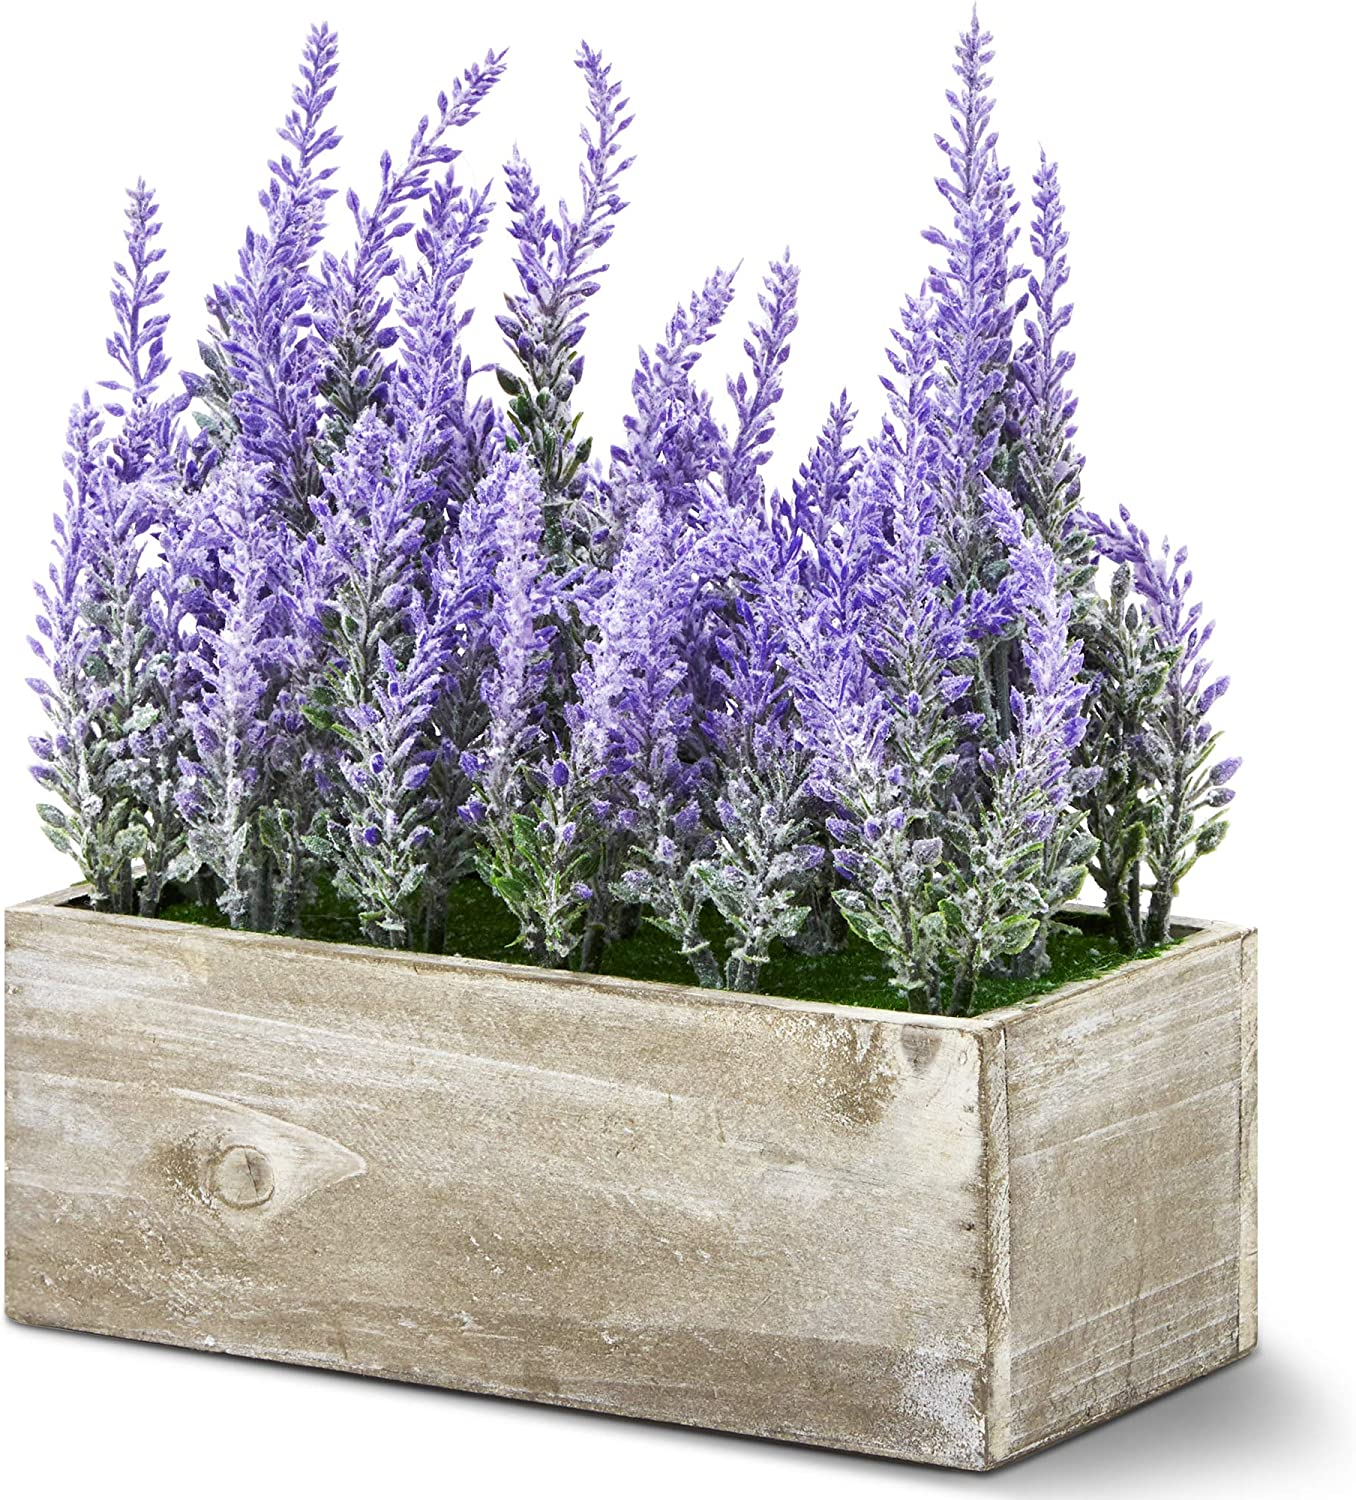 Juvale Artificial Lavender Plant in Rustic Pot Wooden Box (9 x 4 in)